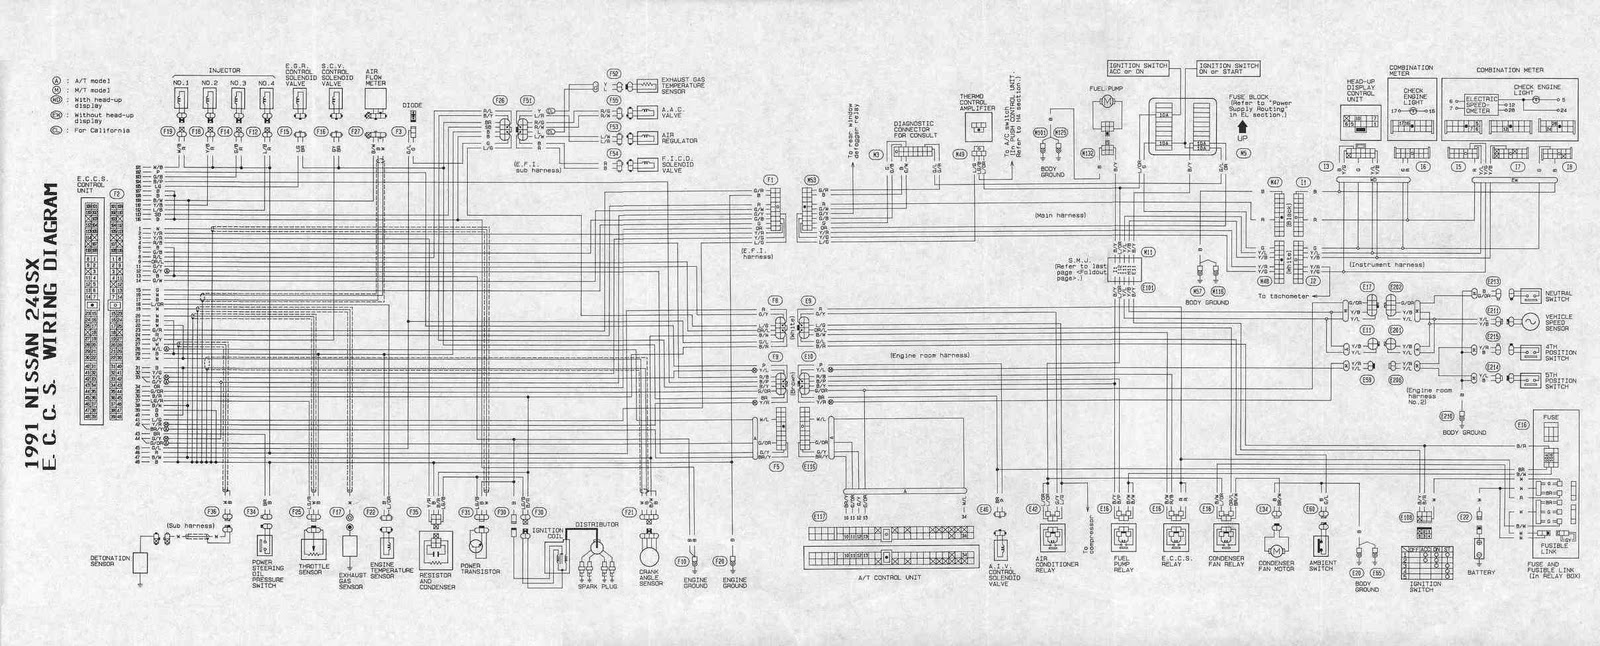 medium resolution of 93 240sx wiring diagram wiring diagram source nissan skyline 240sx wiring diagrams wiring diagram schematics 92